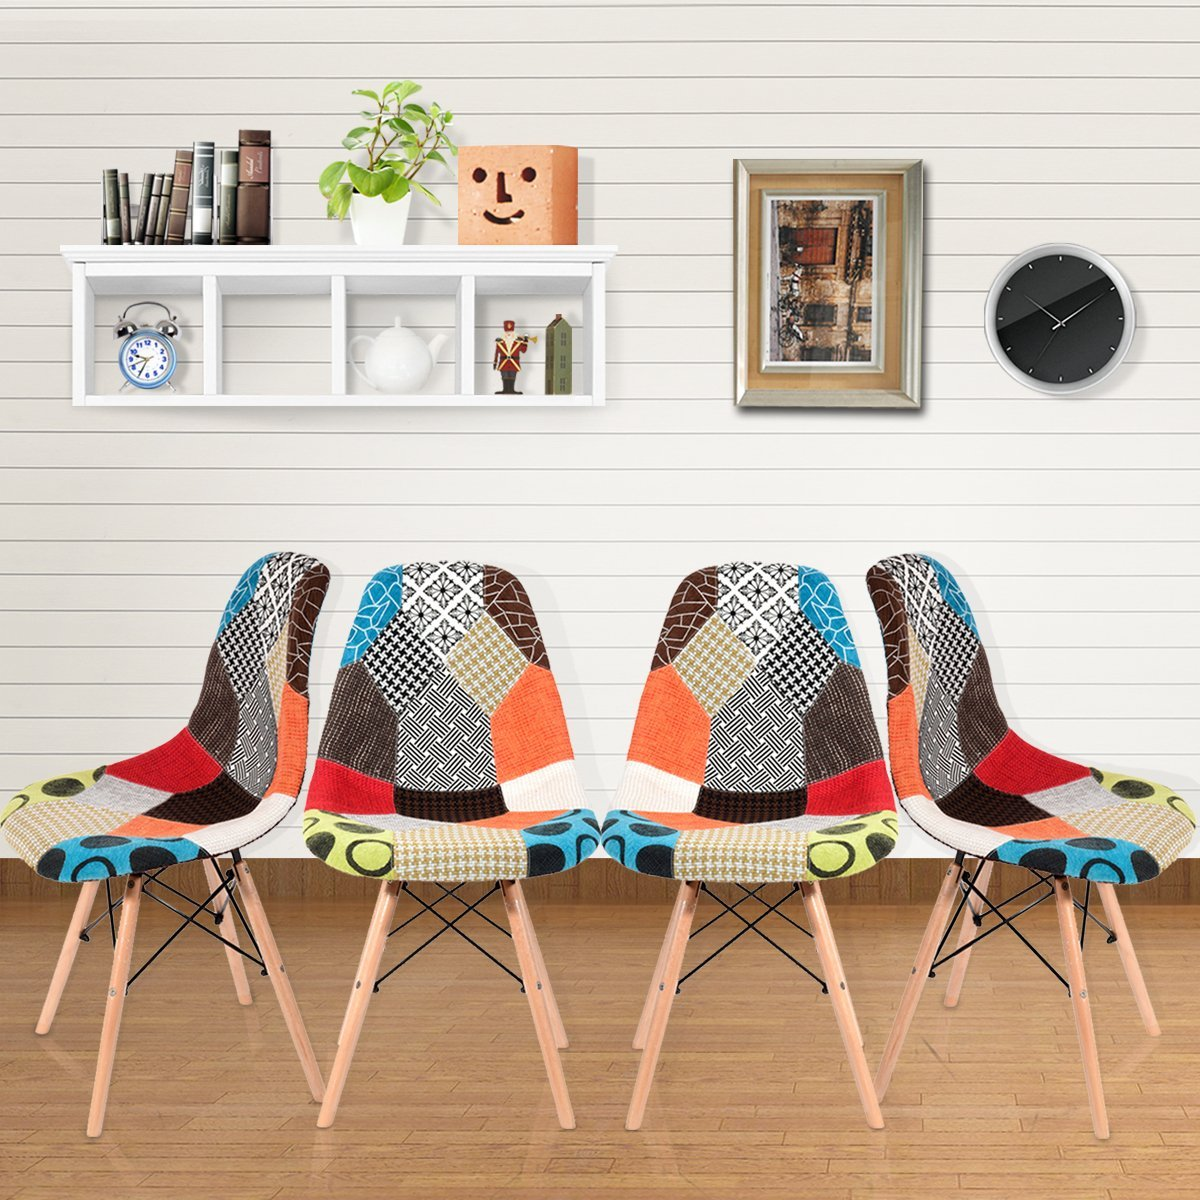 Panana Set Of 4 Dining Chairs Retro Patchwork Chair Fabric Dining Lounge Chairs